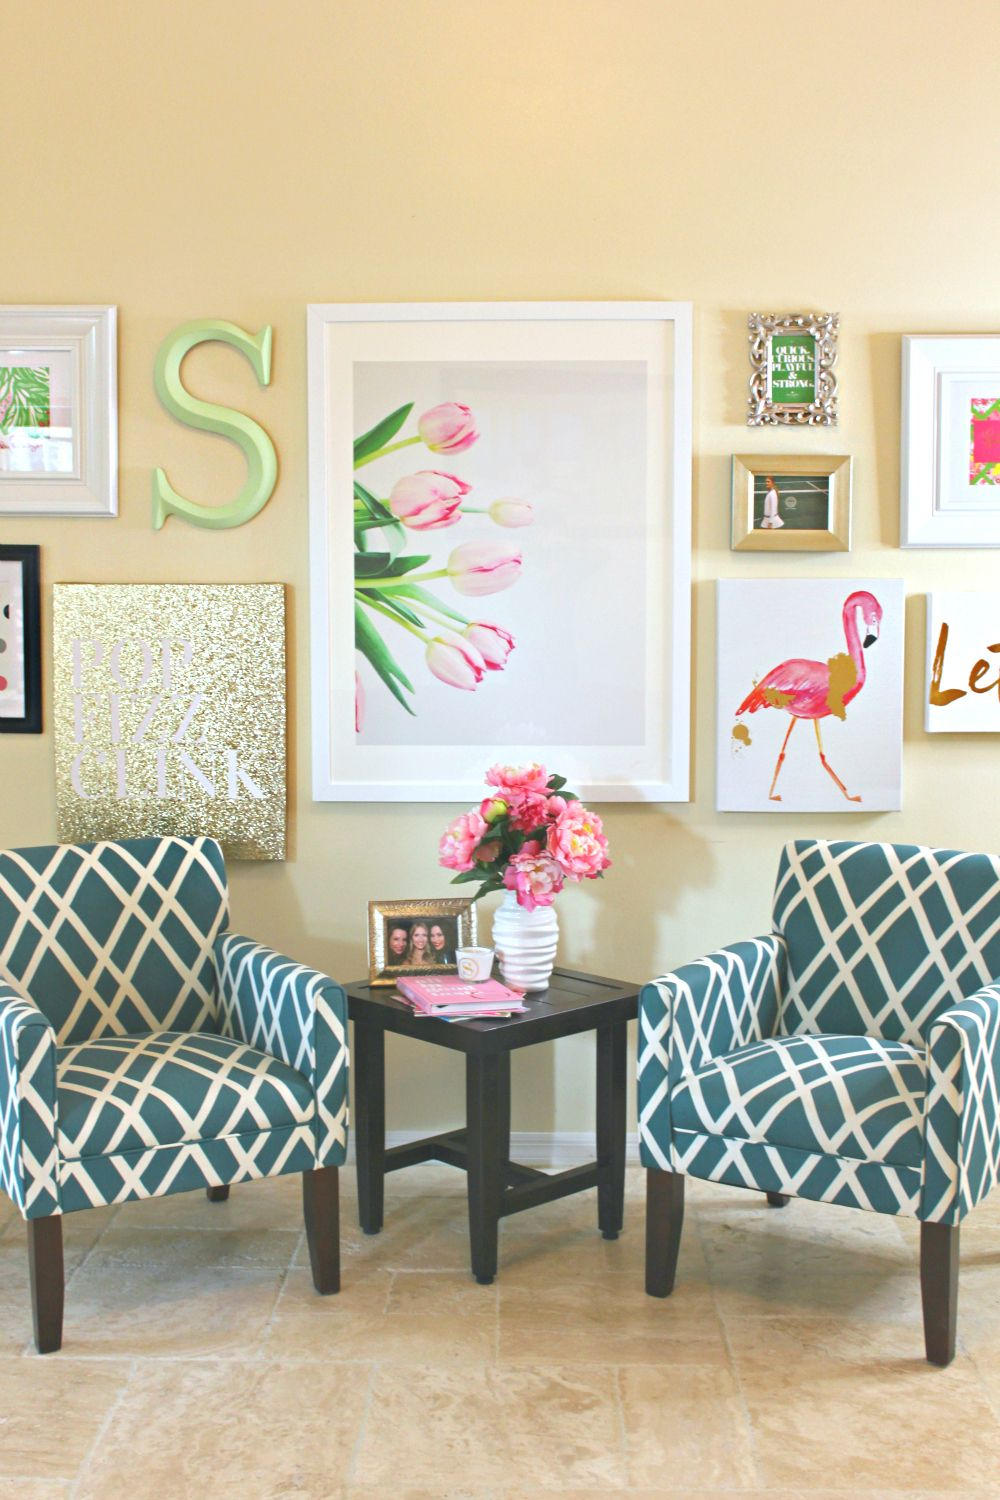 lilly pulitzer chair westbrook valet stand pulitzer-inspired wall art collage | for the home pinterest collages ...